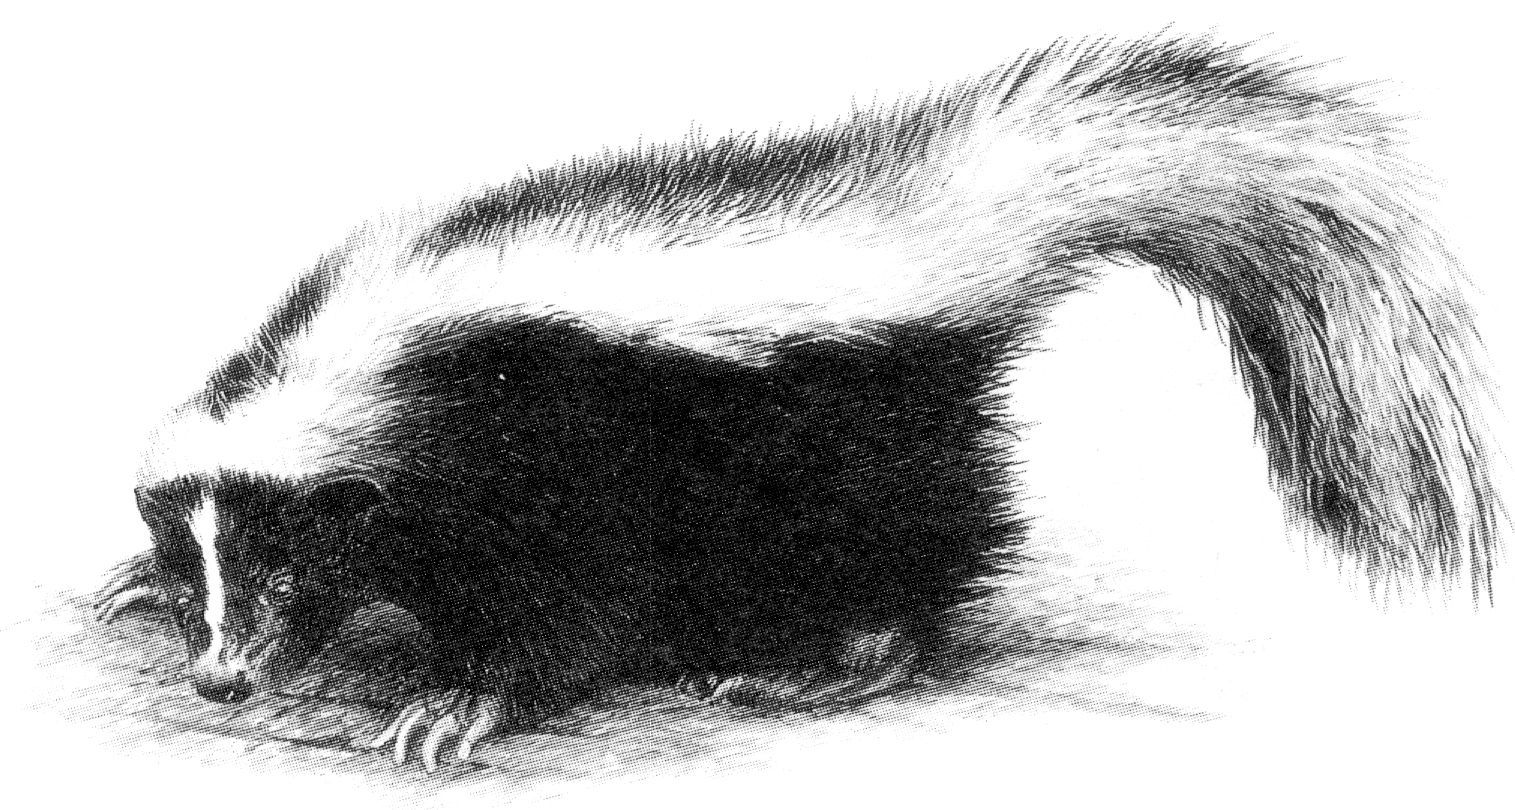 Striped Skunk Drawing Jpg 1 515 215 810 Pixels Outdoors With